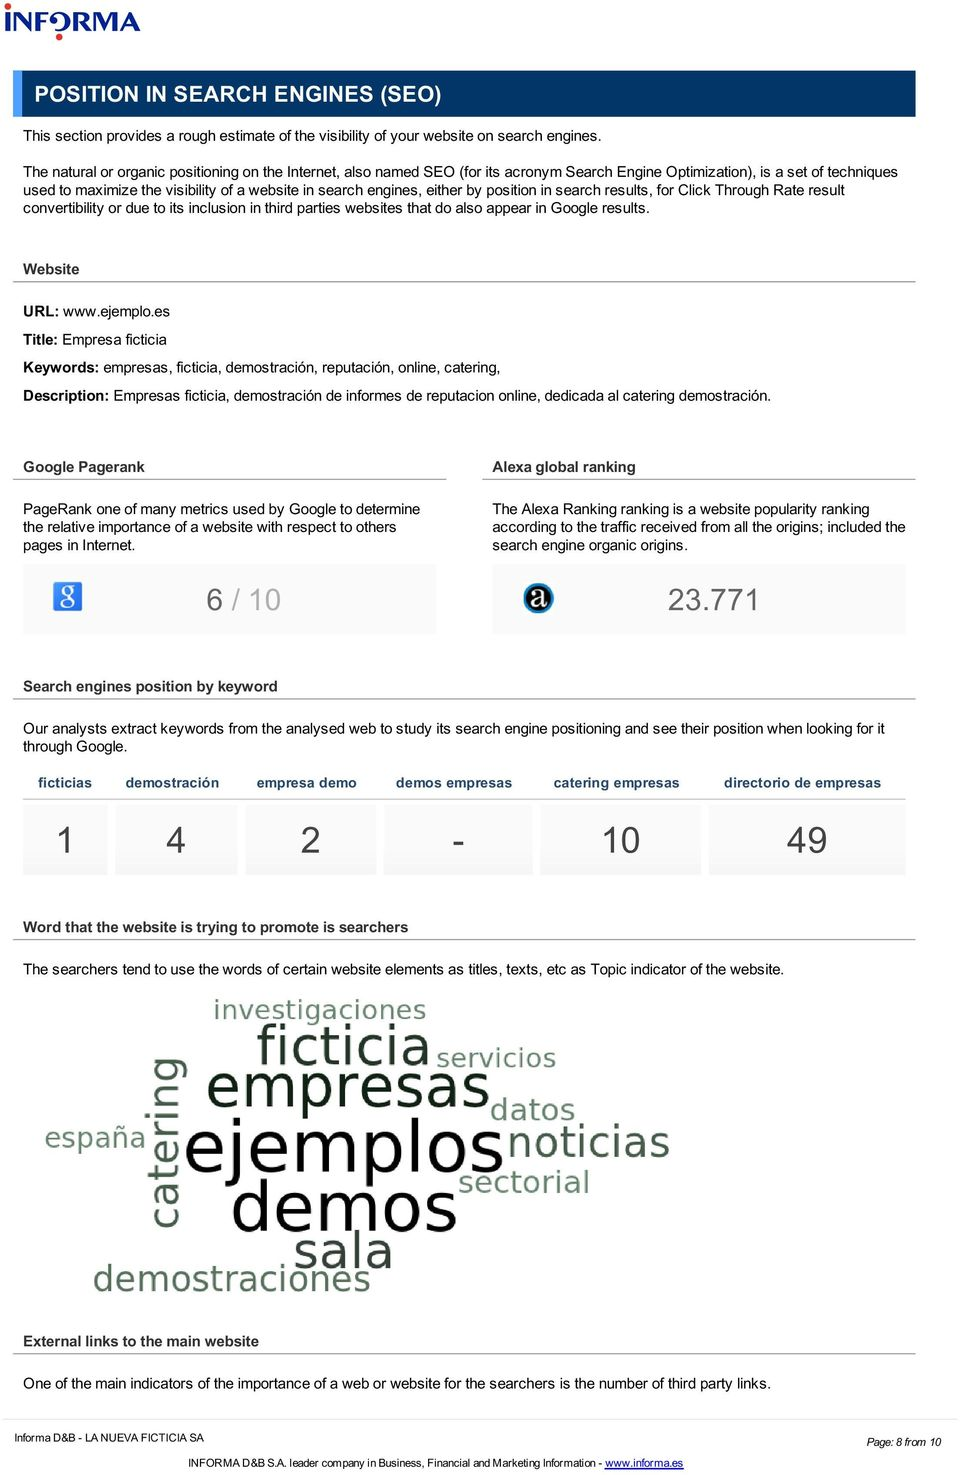 either by position in search results, for Click Through Rate result convertibility or due to its inclusion in third parties websites that do also appear in Google results. Website URL: www.ejemplo.